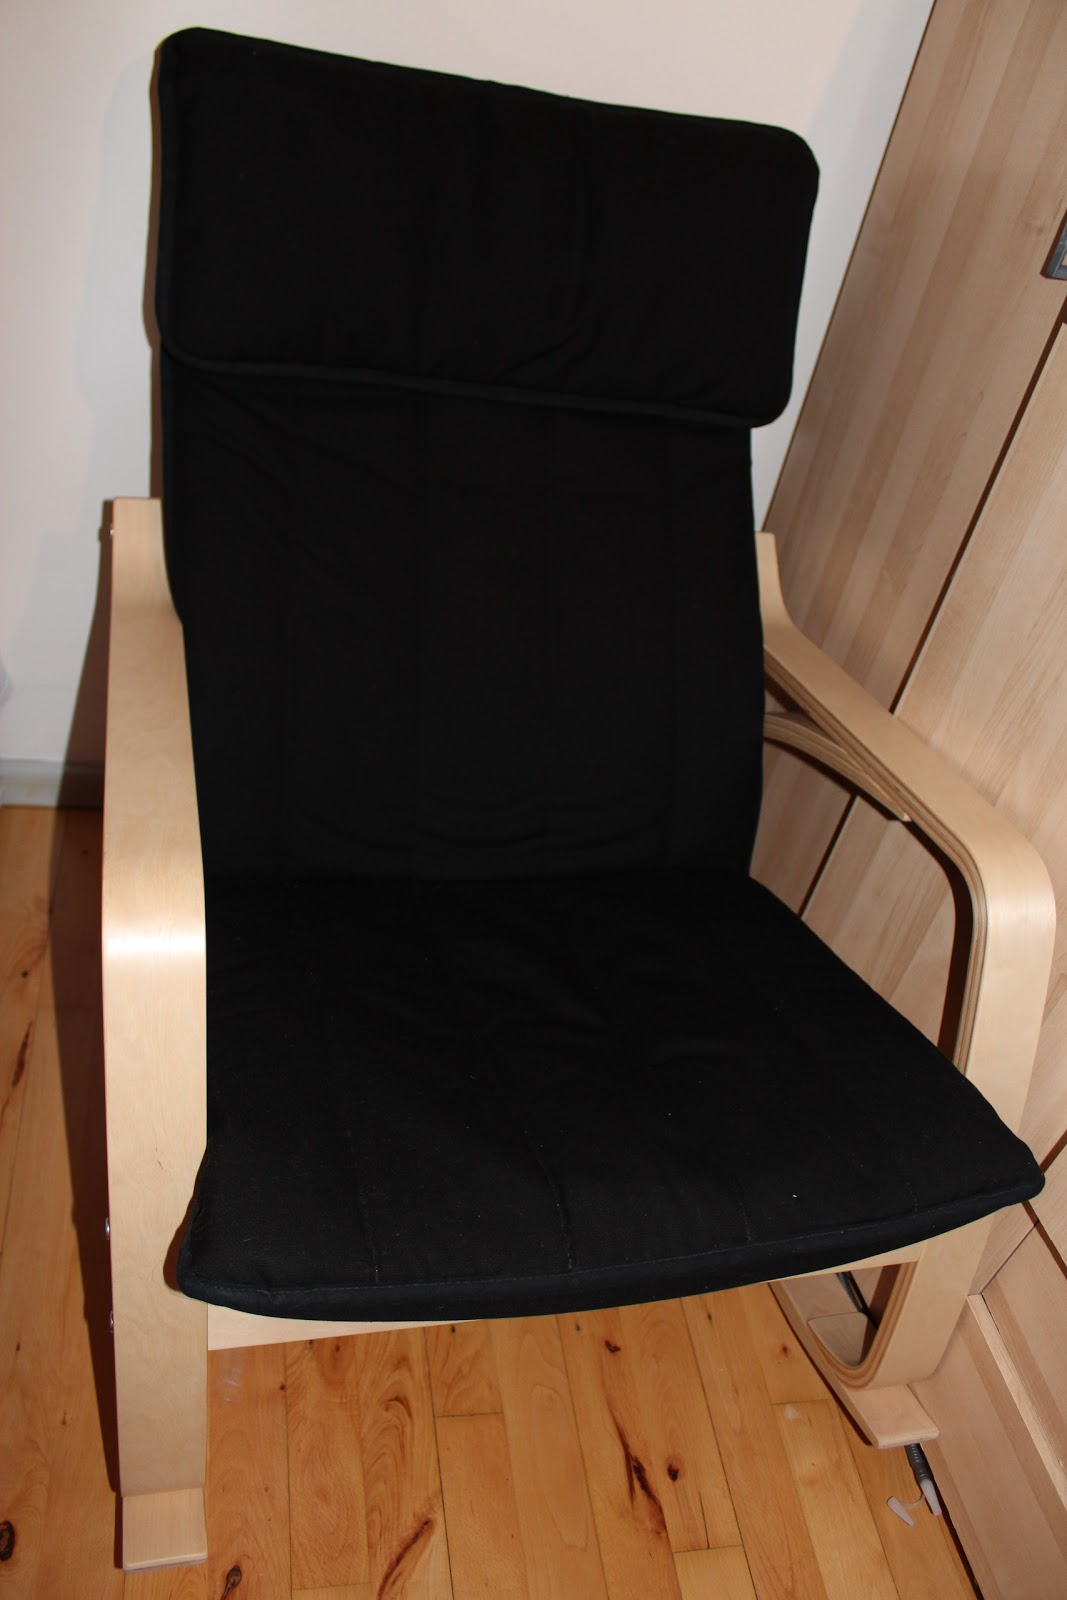 ikea poang chair cushion replacement. Black Bedroom Furniture Sets. Home Design Ideas